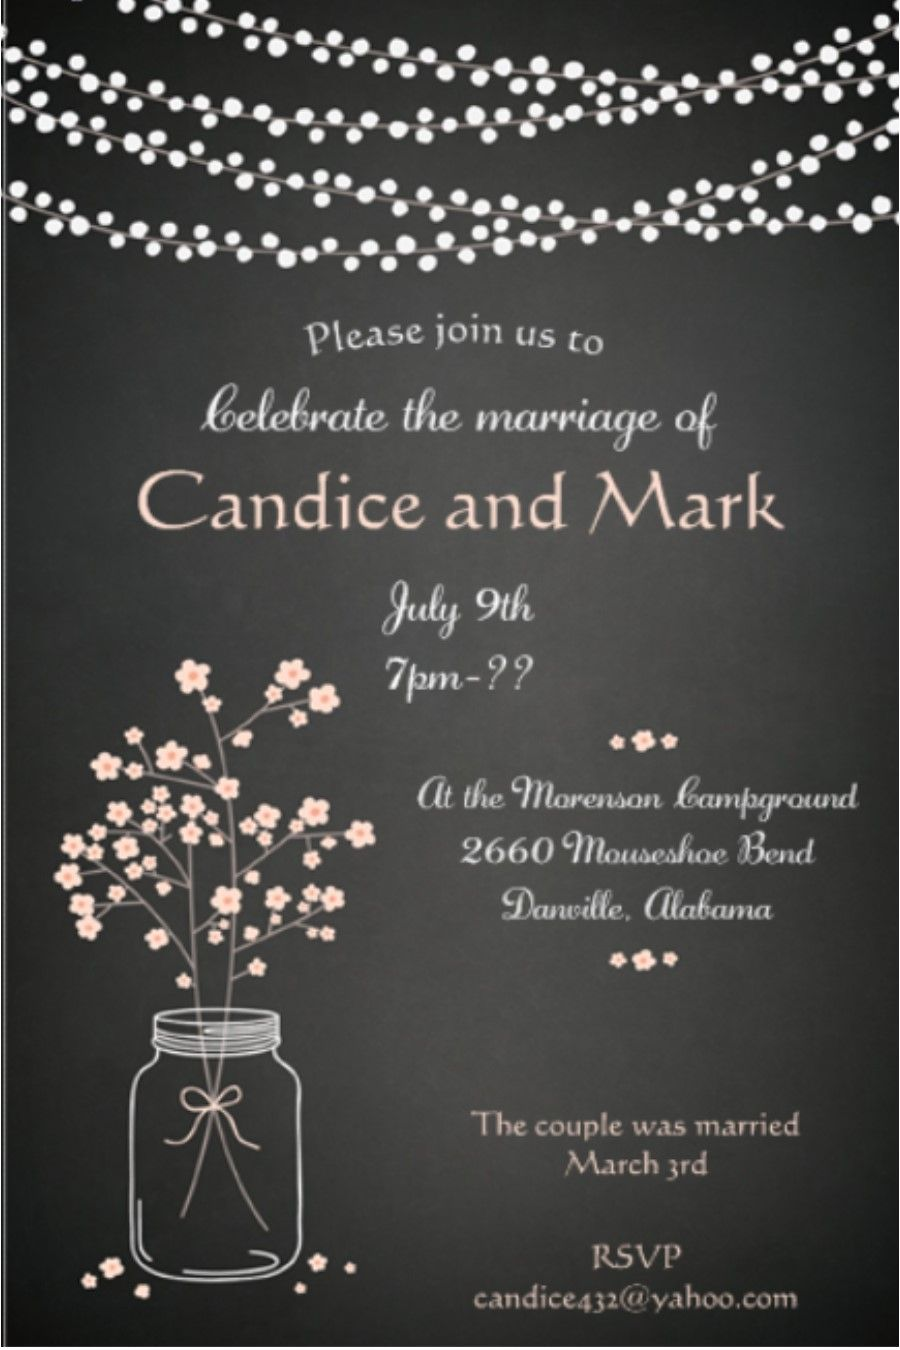 After The Wedding Party Invitations Or Elopement Mason Jar And Lights